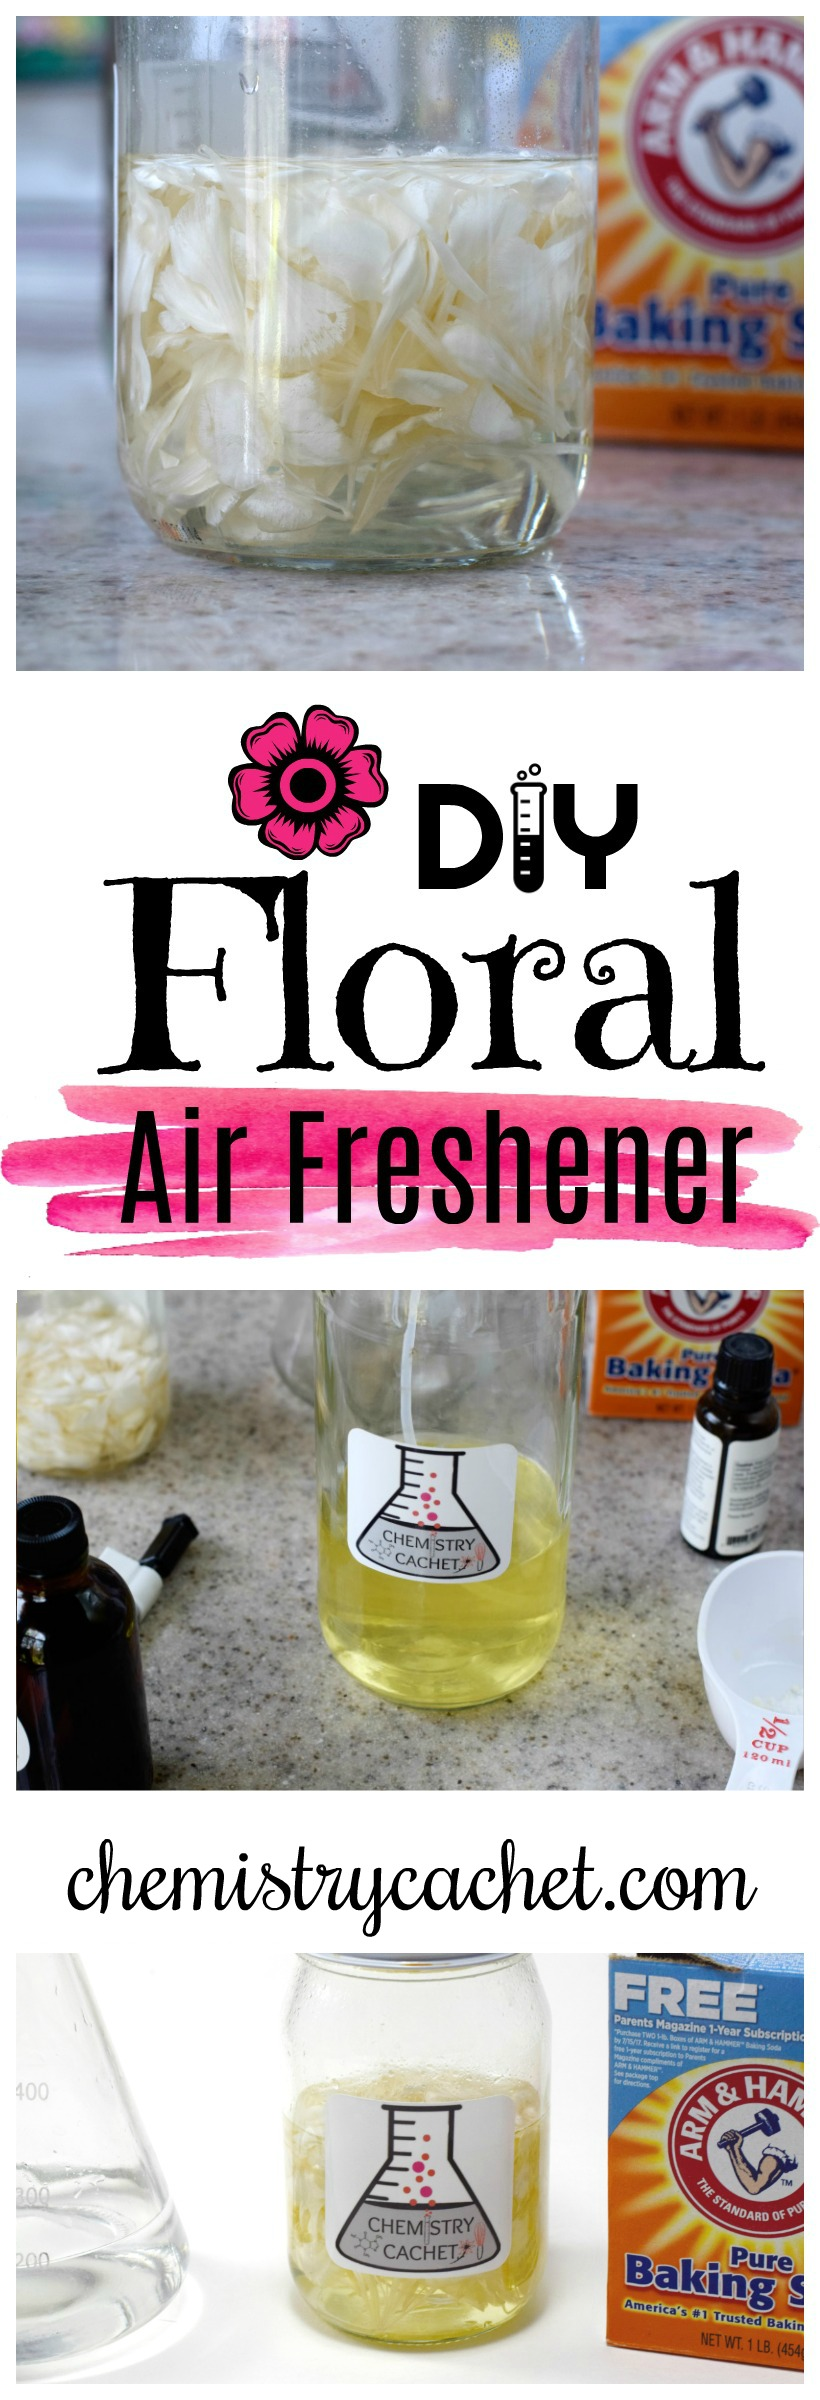 Easy DIY Floral Air Freshener with different scent options! So cheap to make too! on chemistrycachet.com